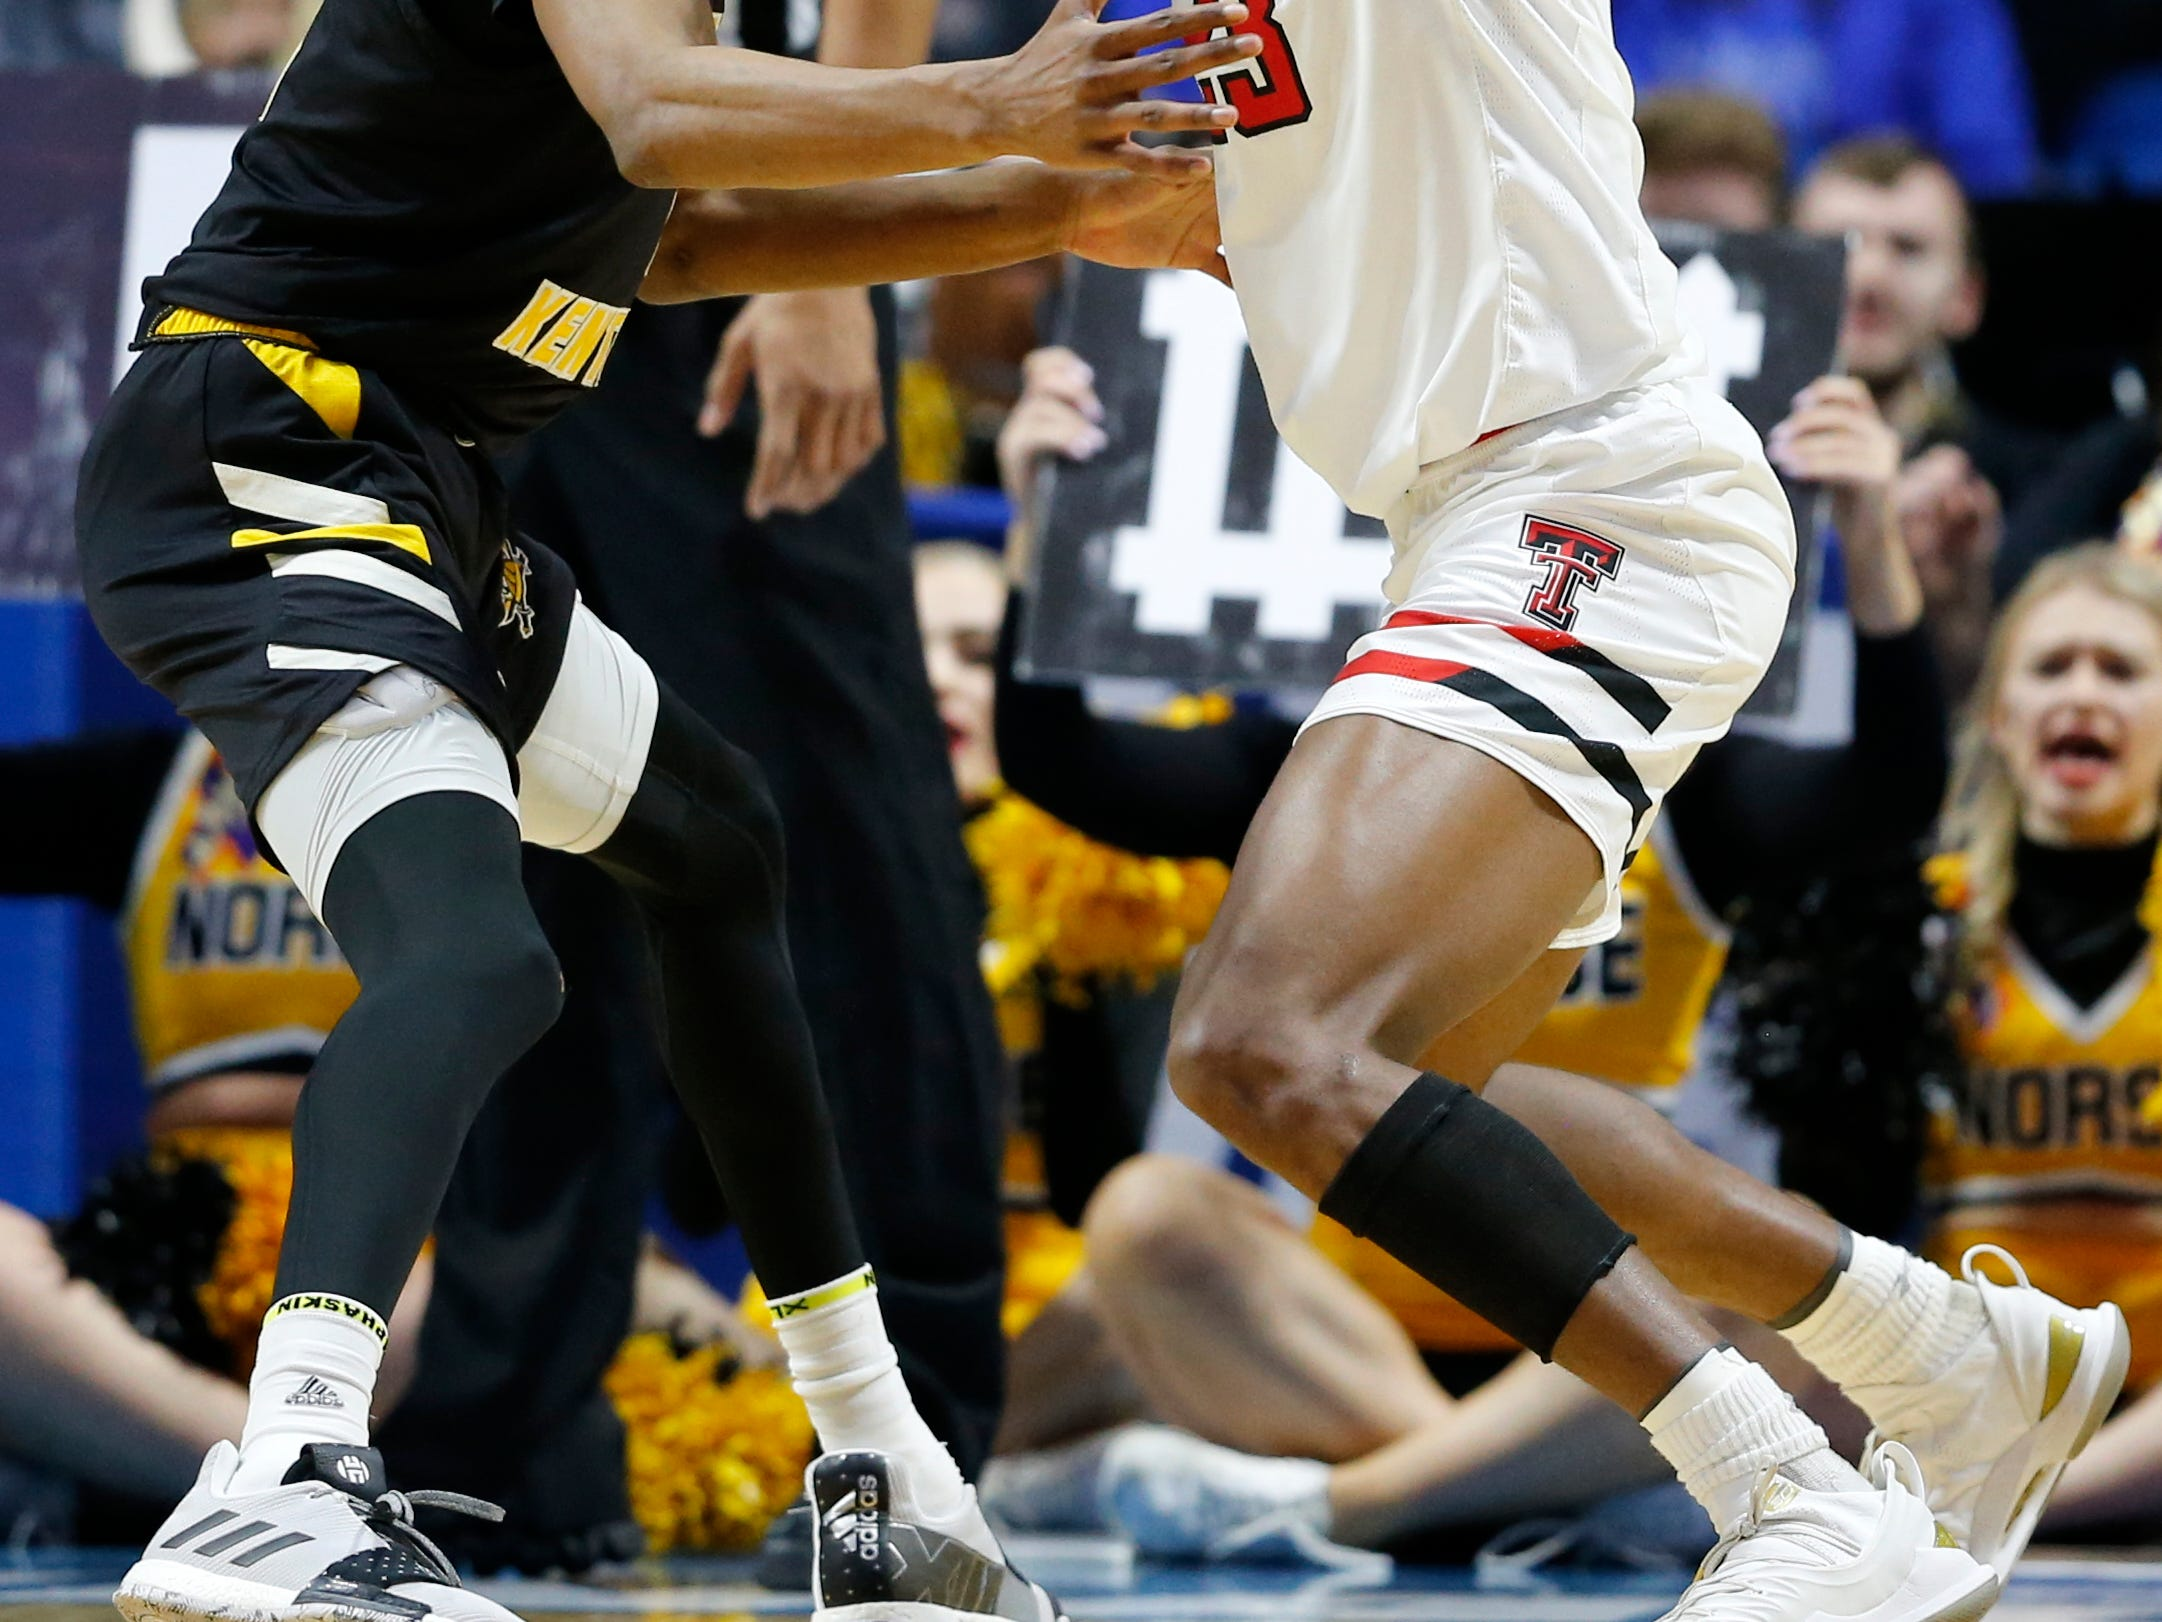 Northern Kentucky Norse guard Jalen Tate (11) gets an elbow to the jaw as he guards Texas Tech Red Raiders guard Jarrett Culver (23) in the first half of the NCAA Tournament First Round game between the 14-seeded Northern Kentucky Norse and the 3-seeded Texas Tech Red Raiders the BOK Center in downtown Tulsa on Friday, March 22, 2019. Texas Tech led 30-26 at halftime.